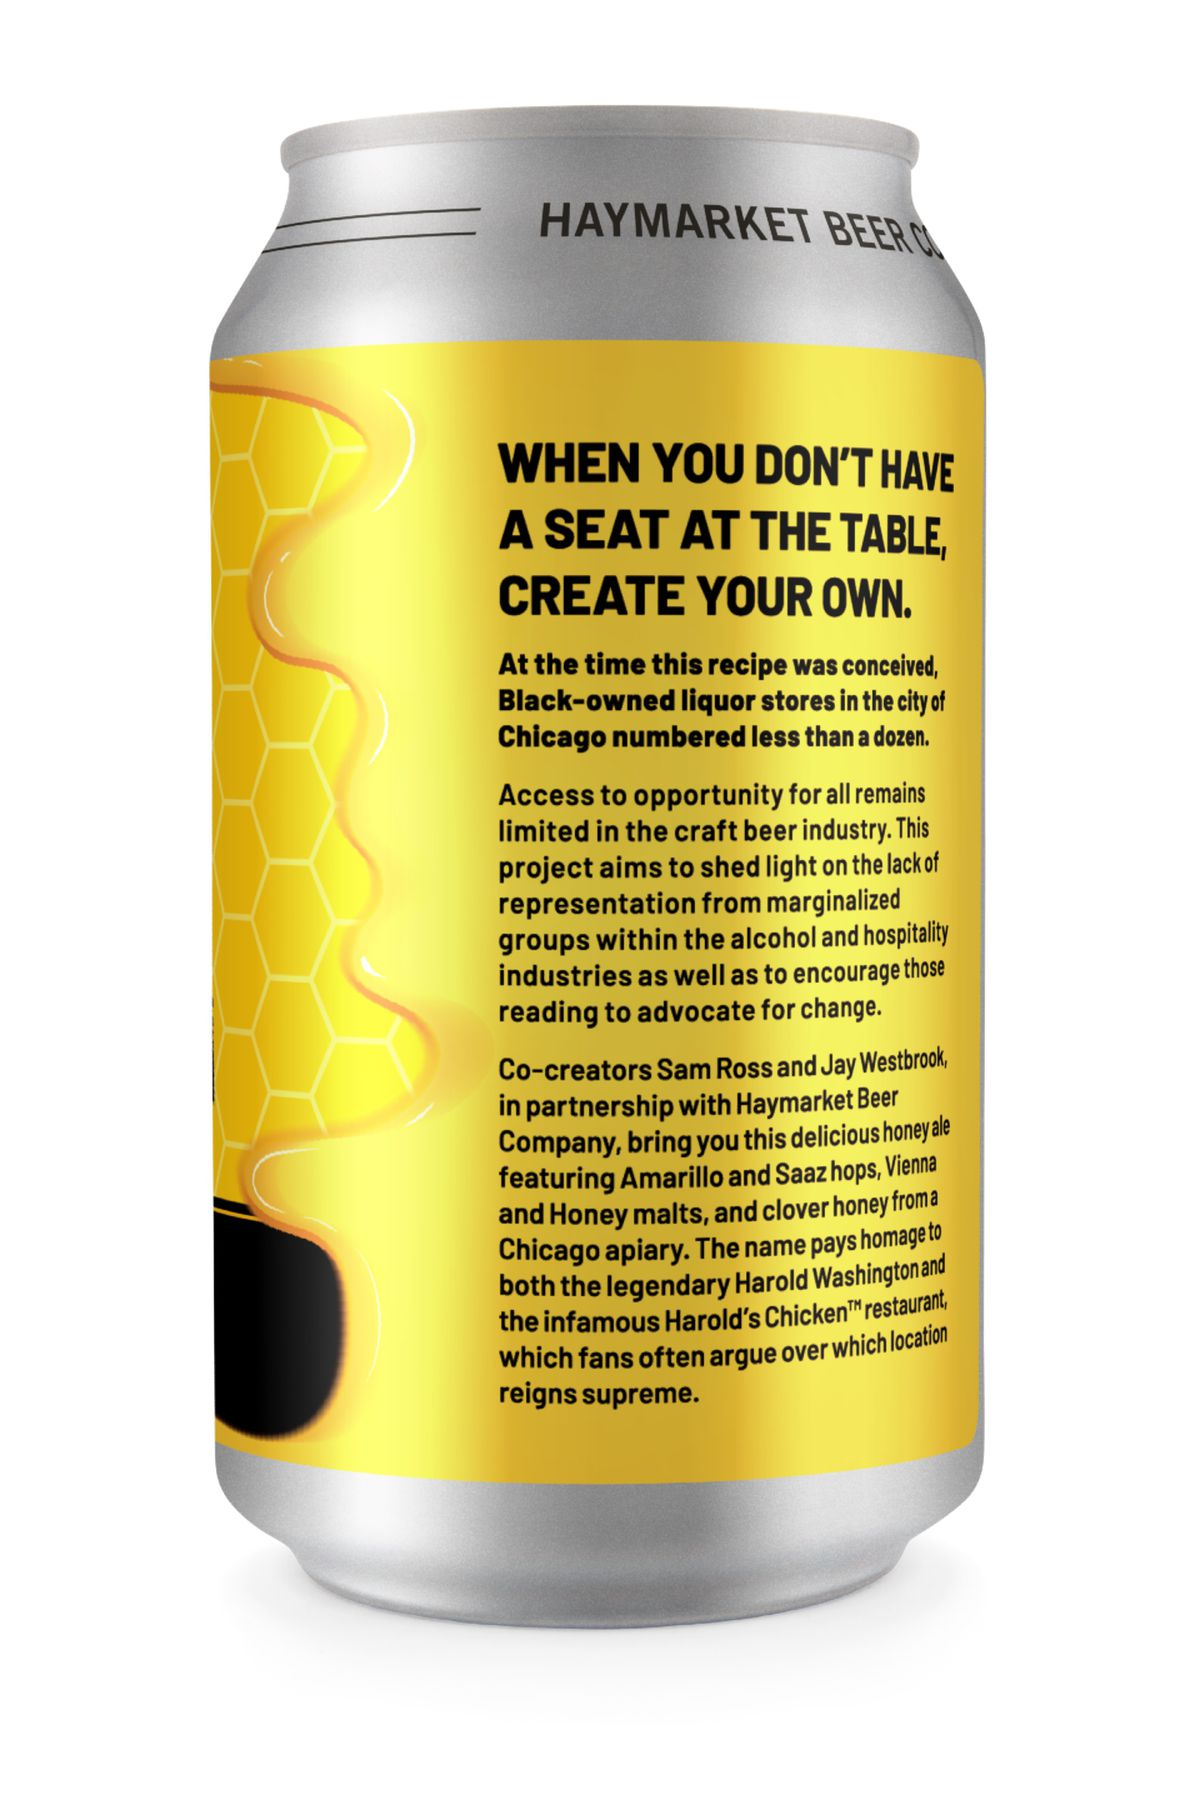 The back of the Harold's '83 Honey Ale beer can features an inspiring message.